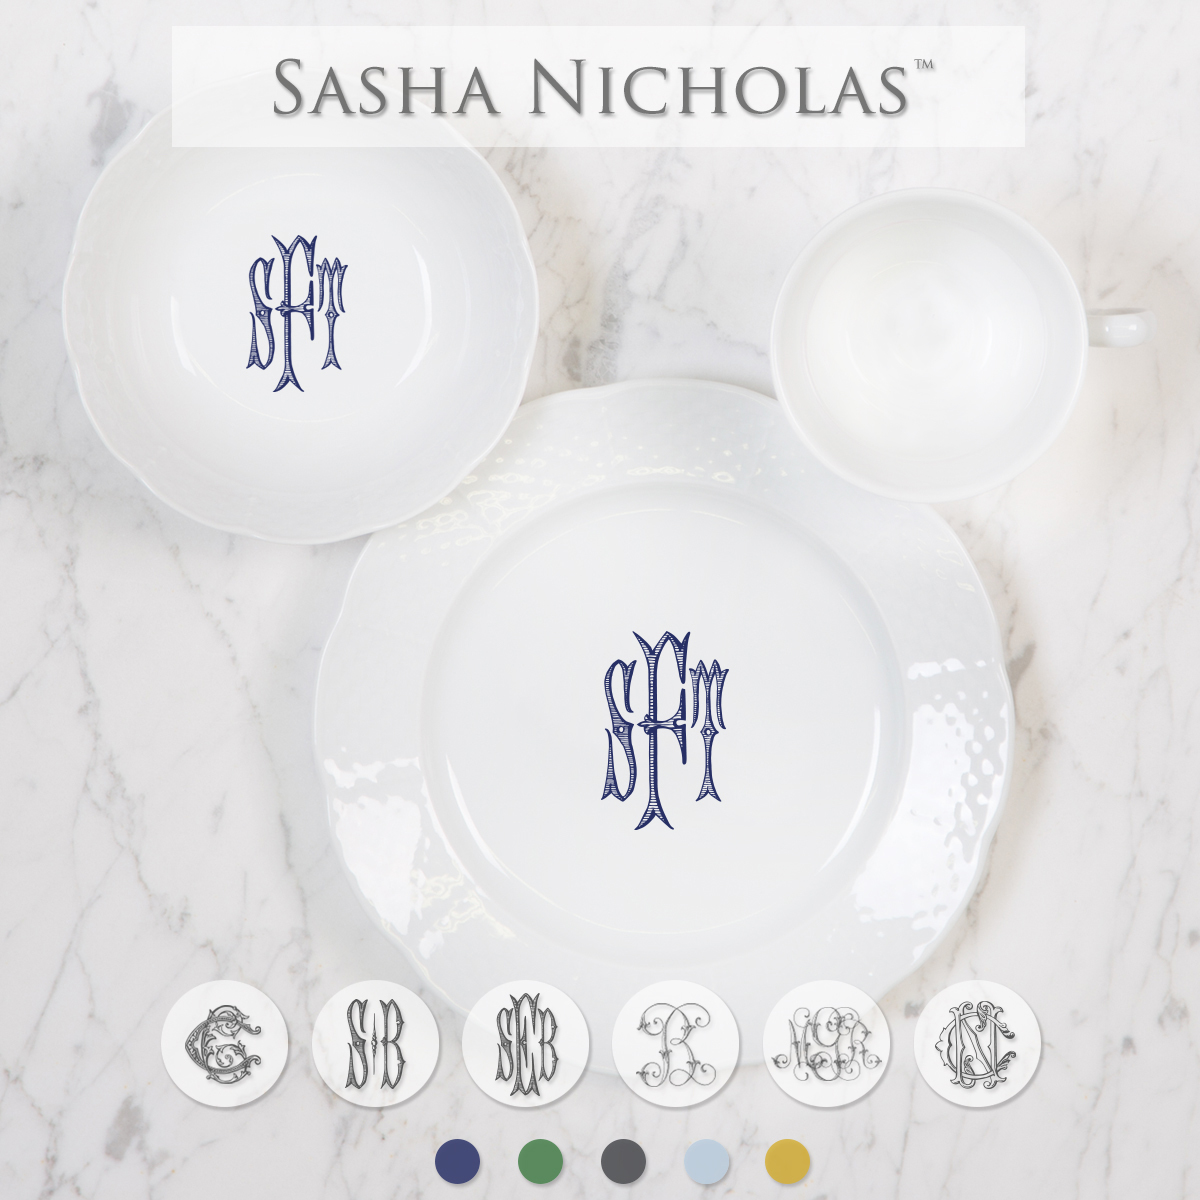 The perfect custom gift for parents, godparents, & grandparents to give for upcoming births & special occasions. Your little one can now have their own set of dinnerware with a personal inscription on back! Choose from their signature font styles or use a custom monogram or crest of your choice. | Sasha Nicholas's white porcelain child & baby set